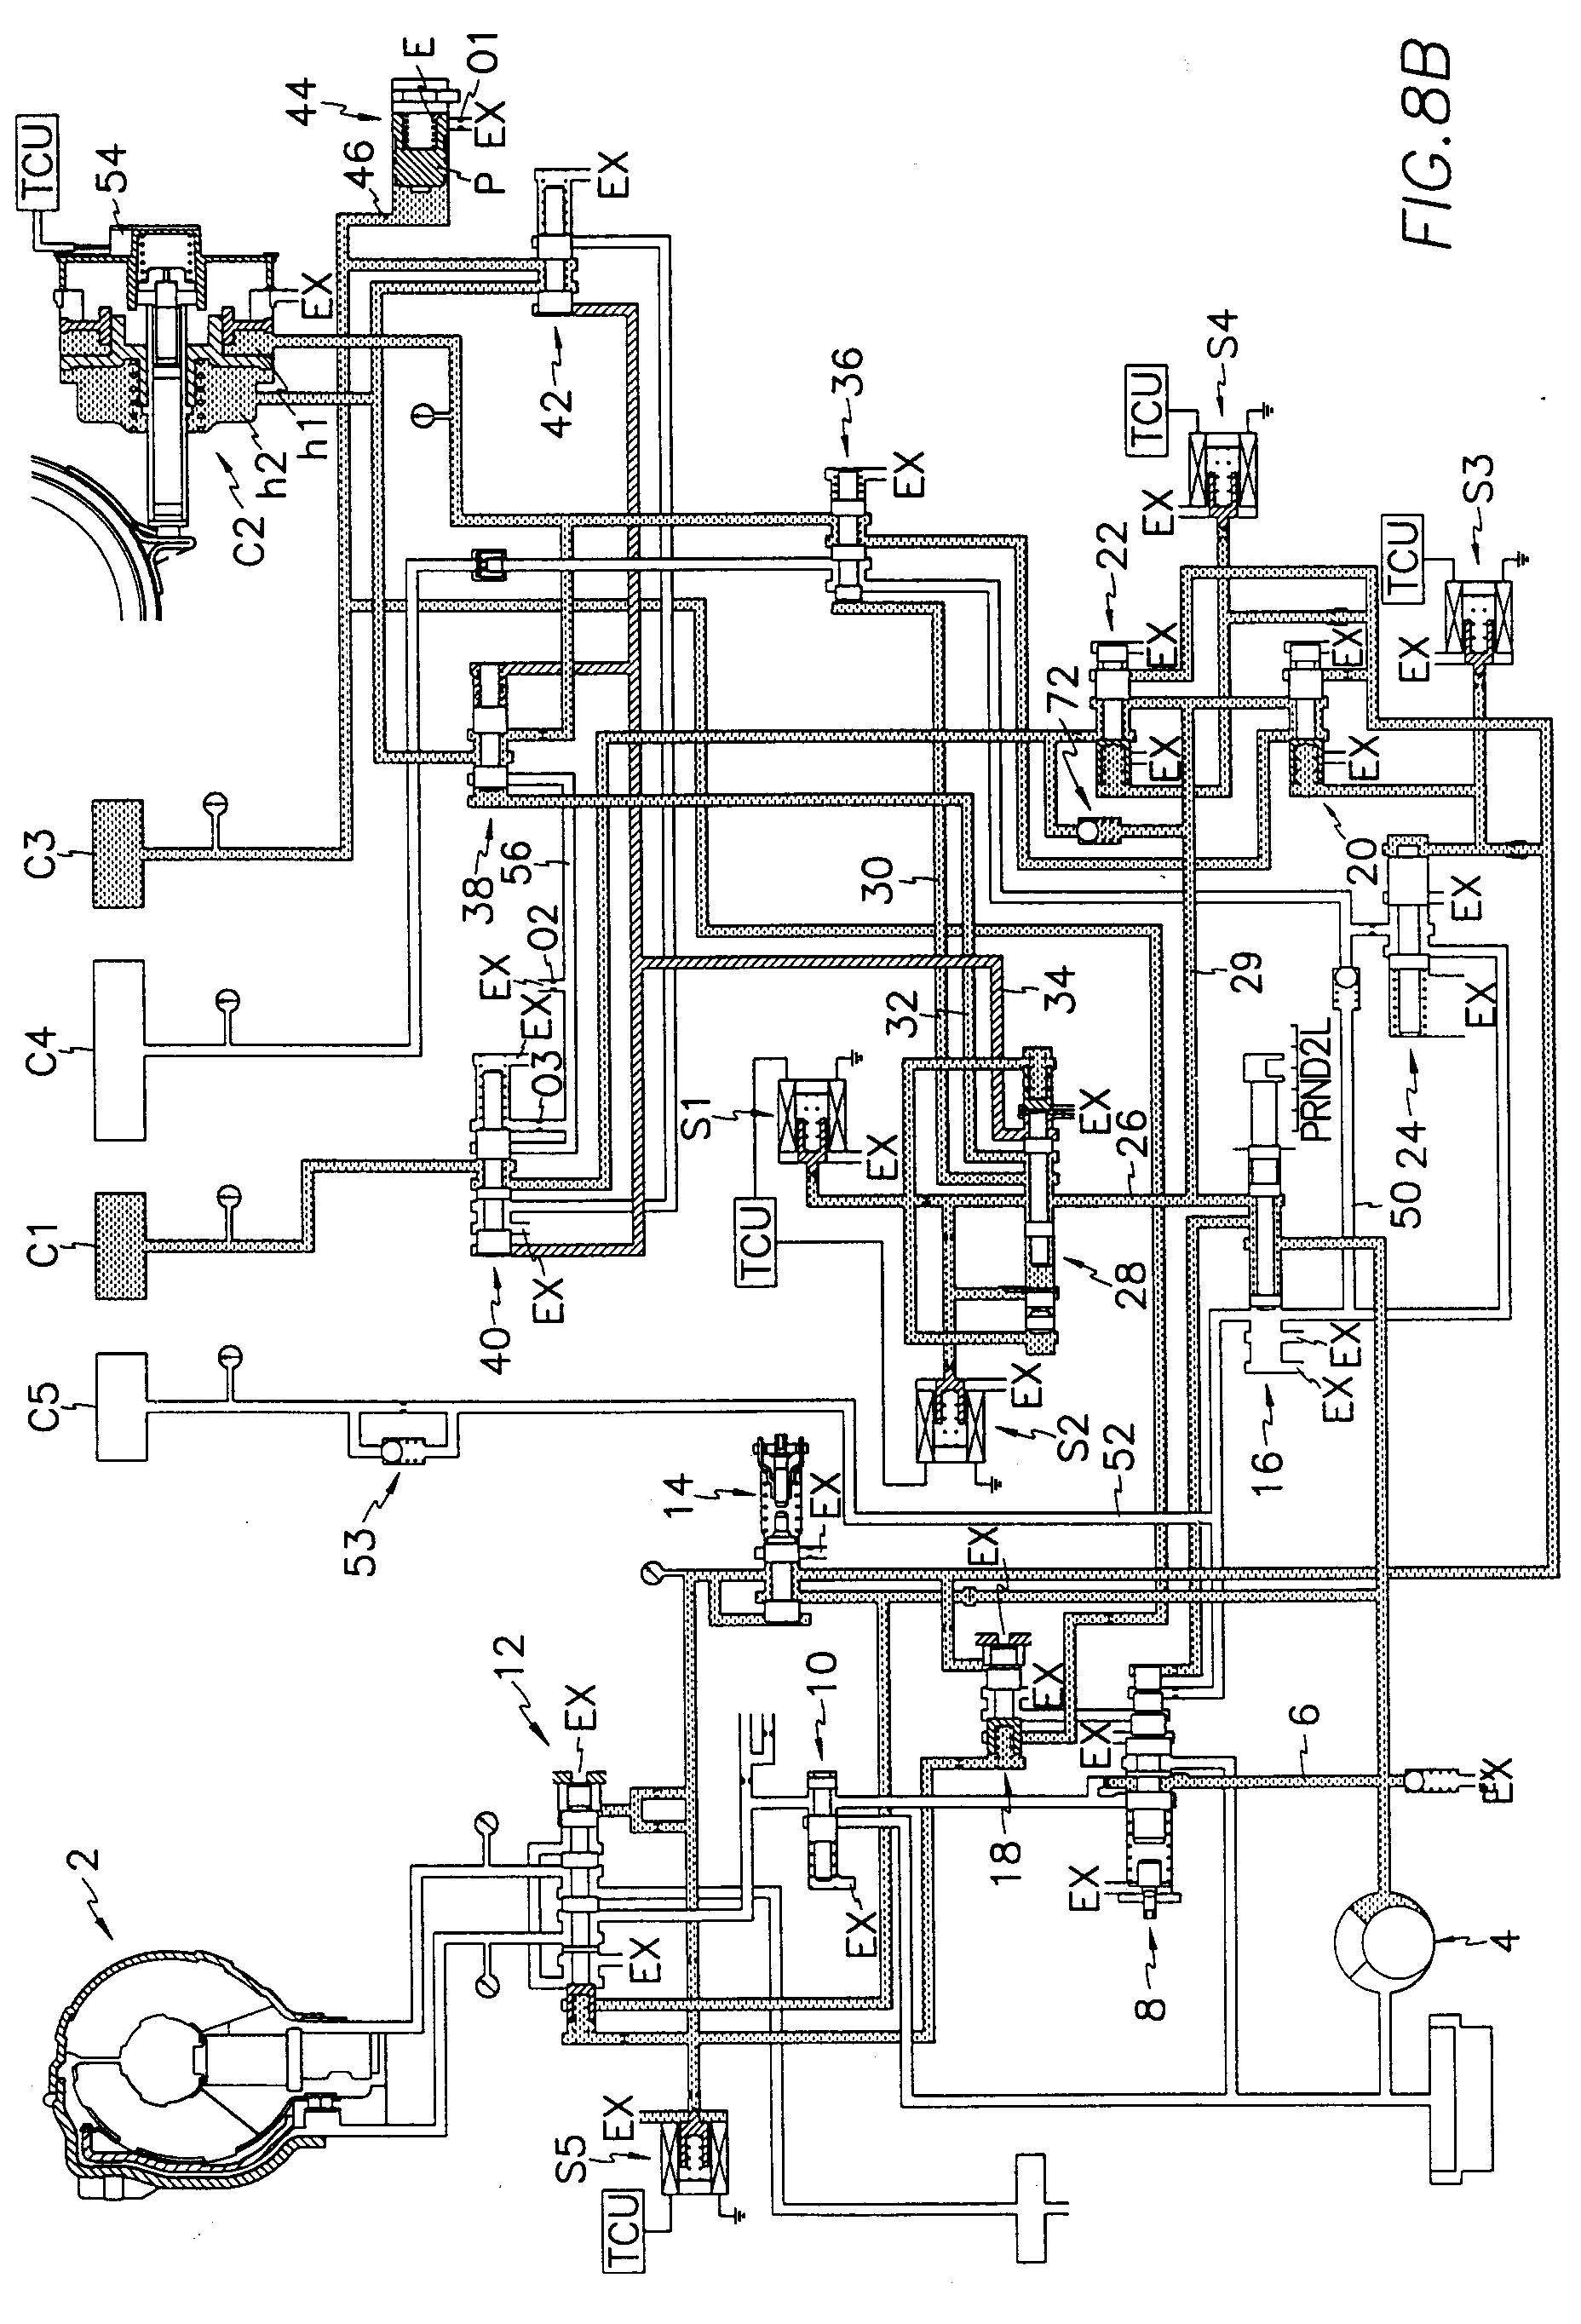 hight resolution of wiring diagram for international truck the wiring international wiring diagram s76 international wiring diagram 1984 cargostar